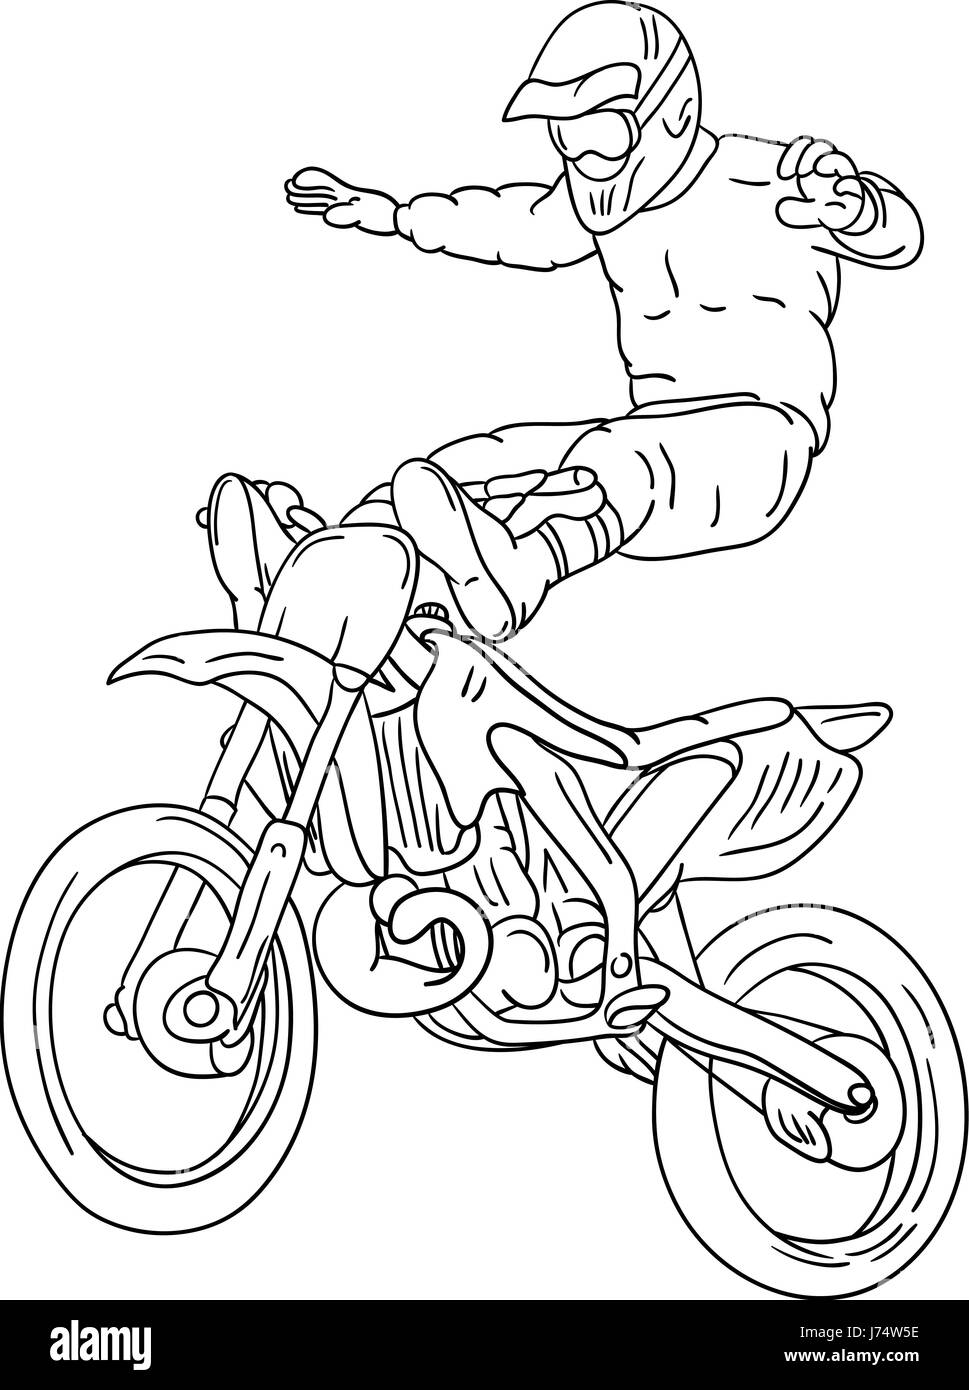 Uncategorized Motocross Pictures To Colour In isolated colour illustration paint freestyle draw cartoon stock photo motorcycle motorbike